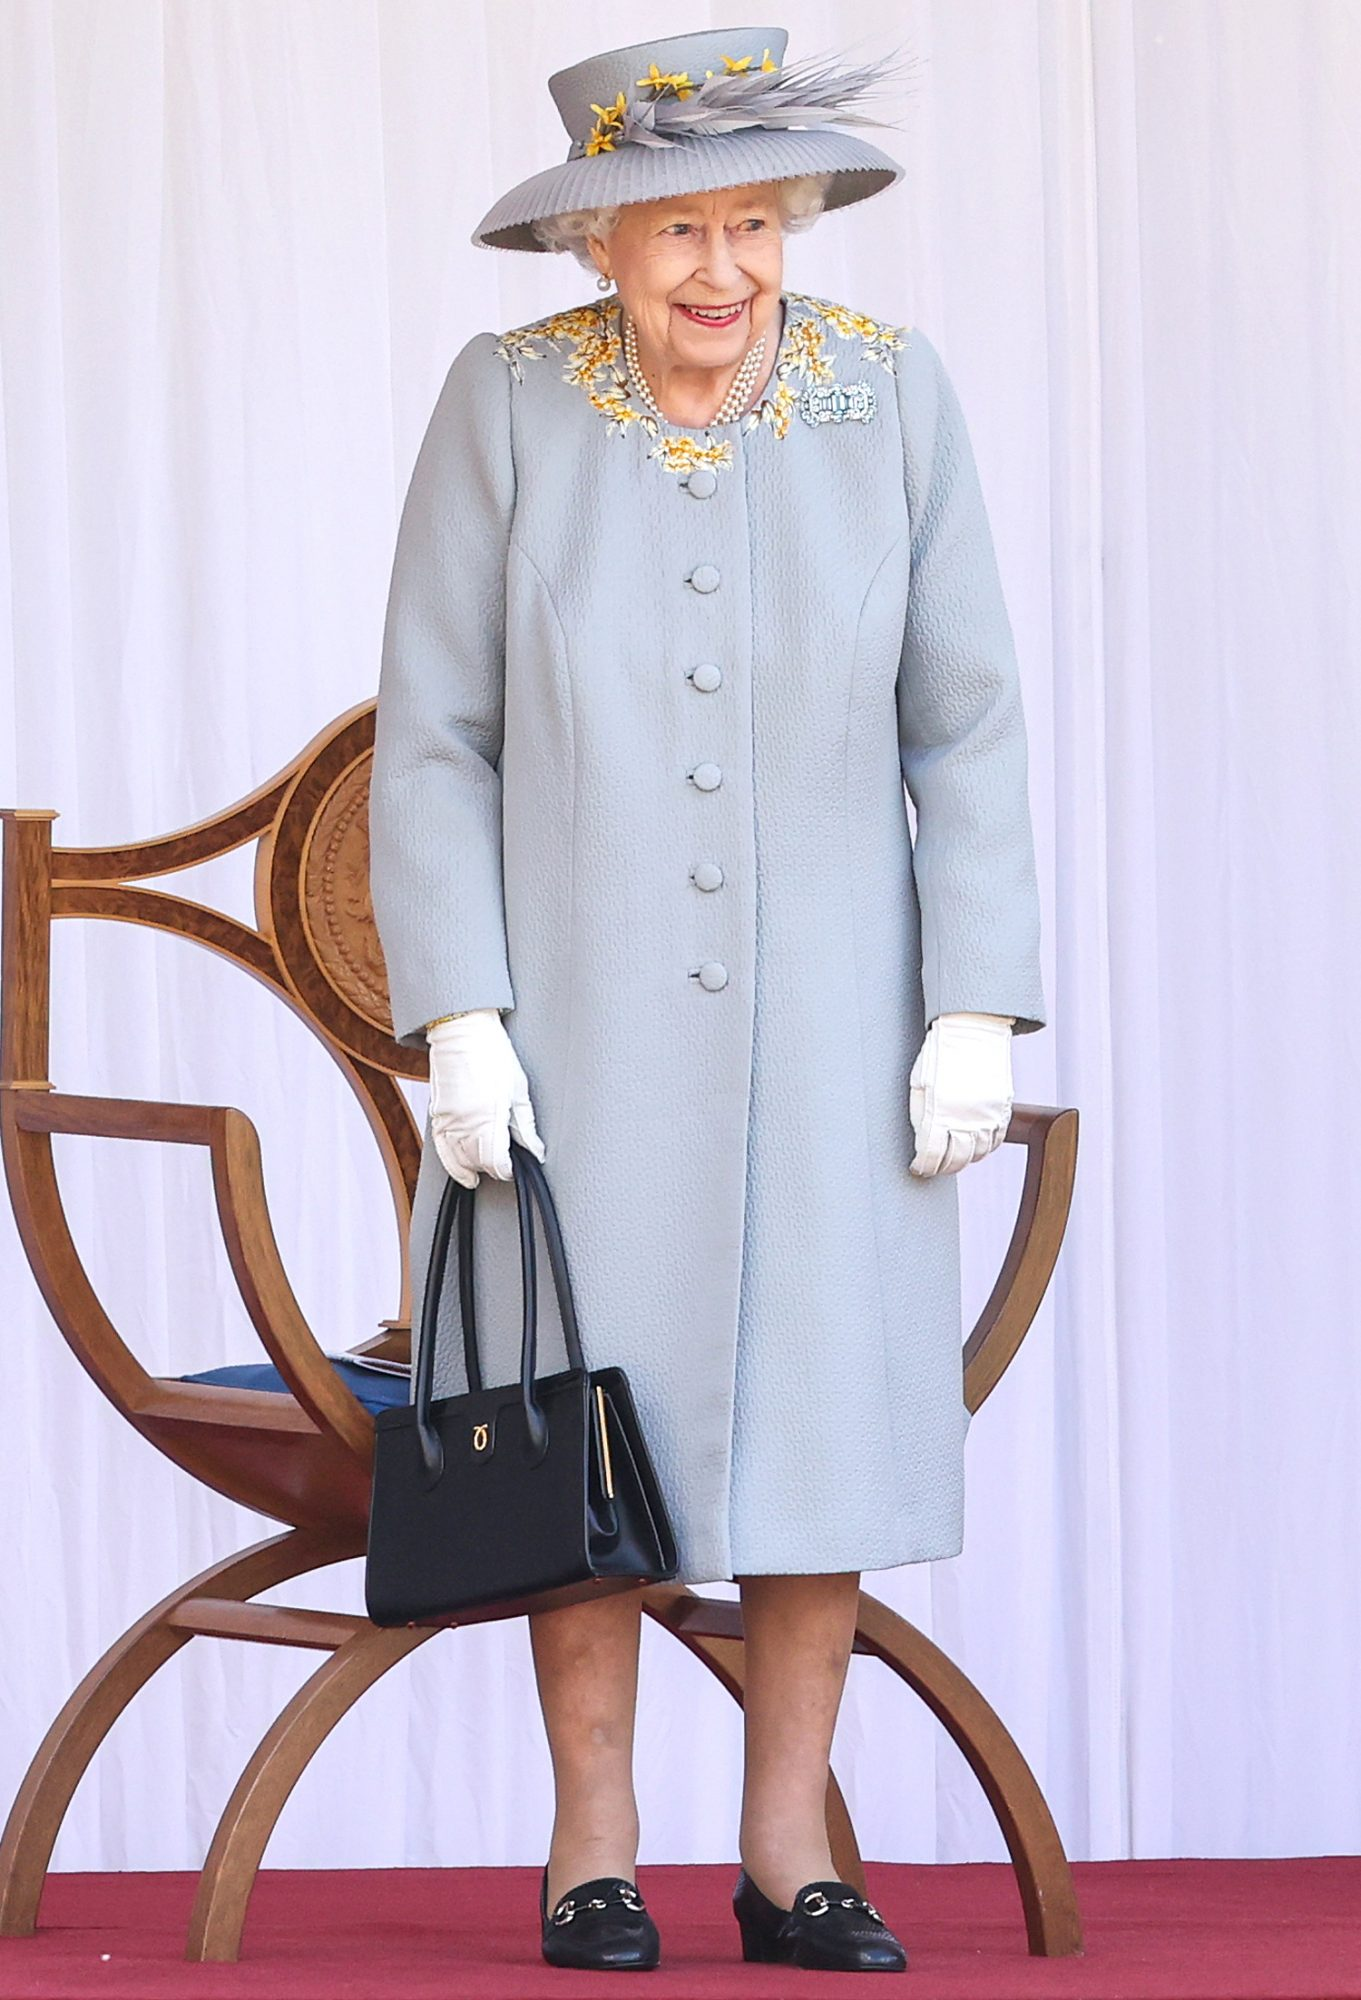 Queen Elizabeth II attends a military ceremony in the Quadrangle of Windsor Castle